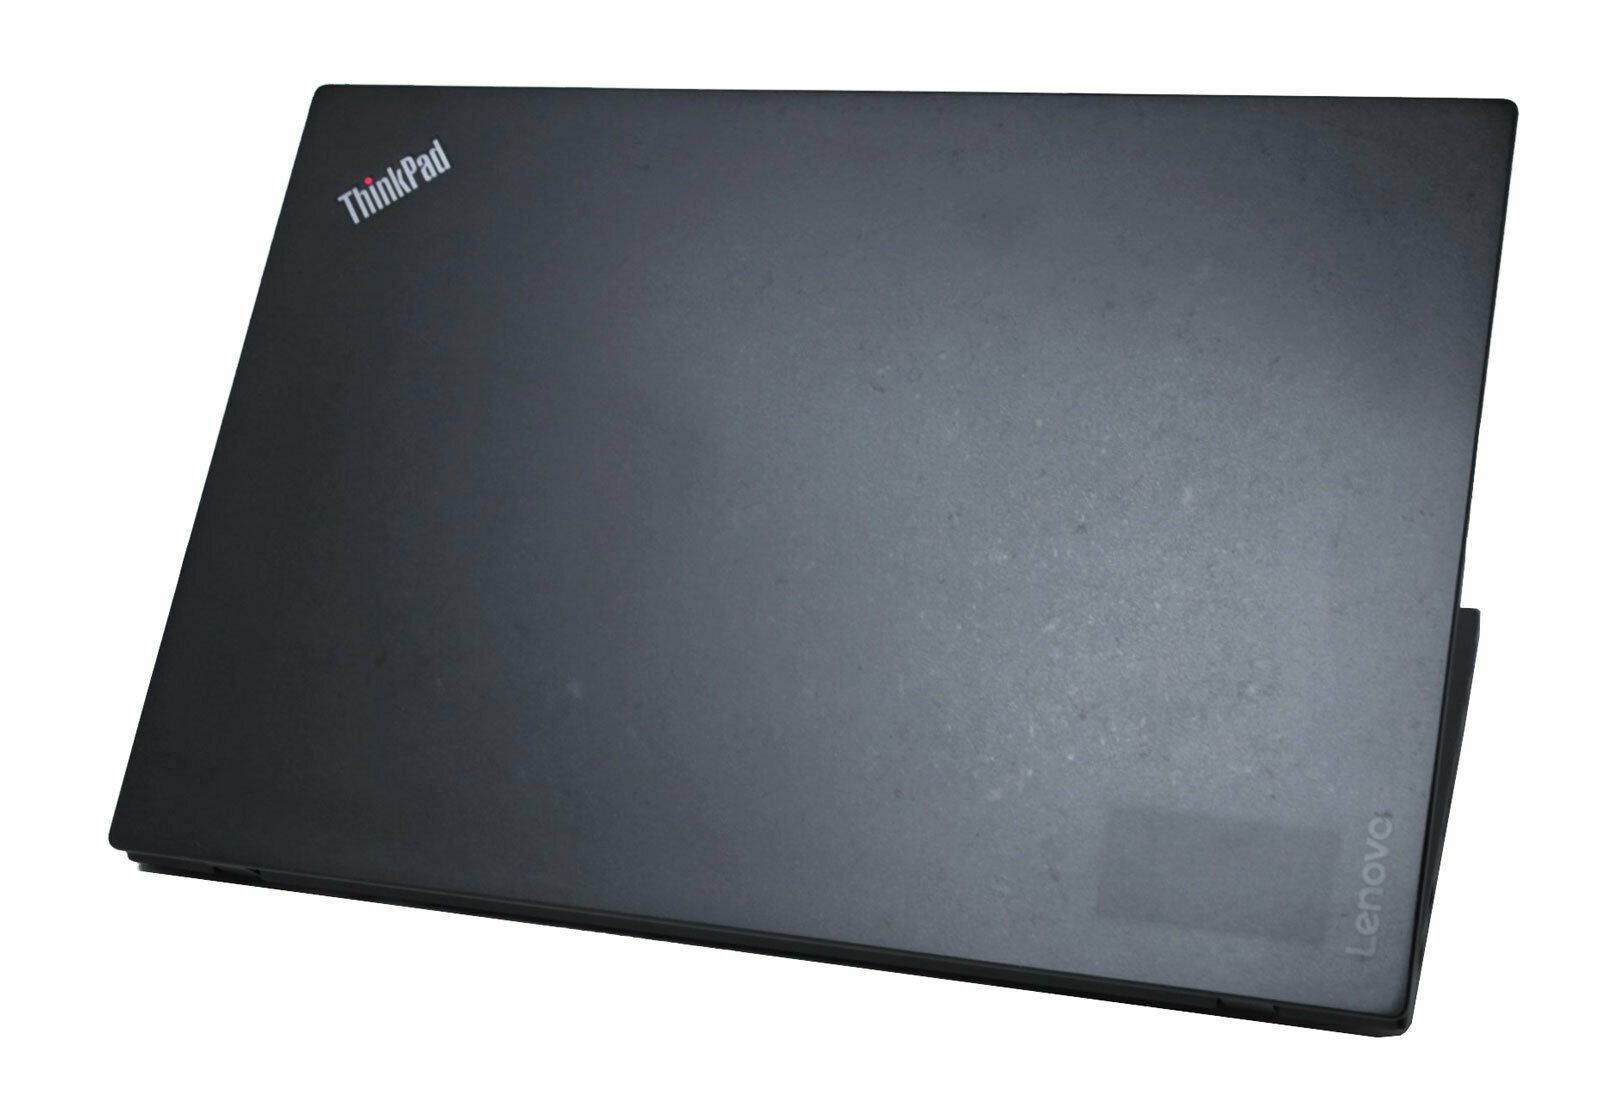 Lenovo Thinkpad T460S IPS UltraBook, 20GB RAM, Core i7-6600U, 256GB, 1.36Kg - CruiseTech